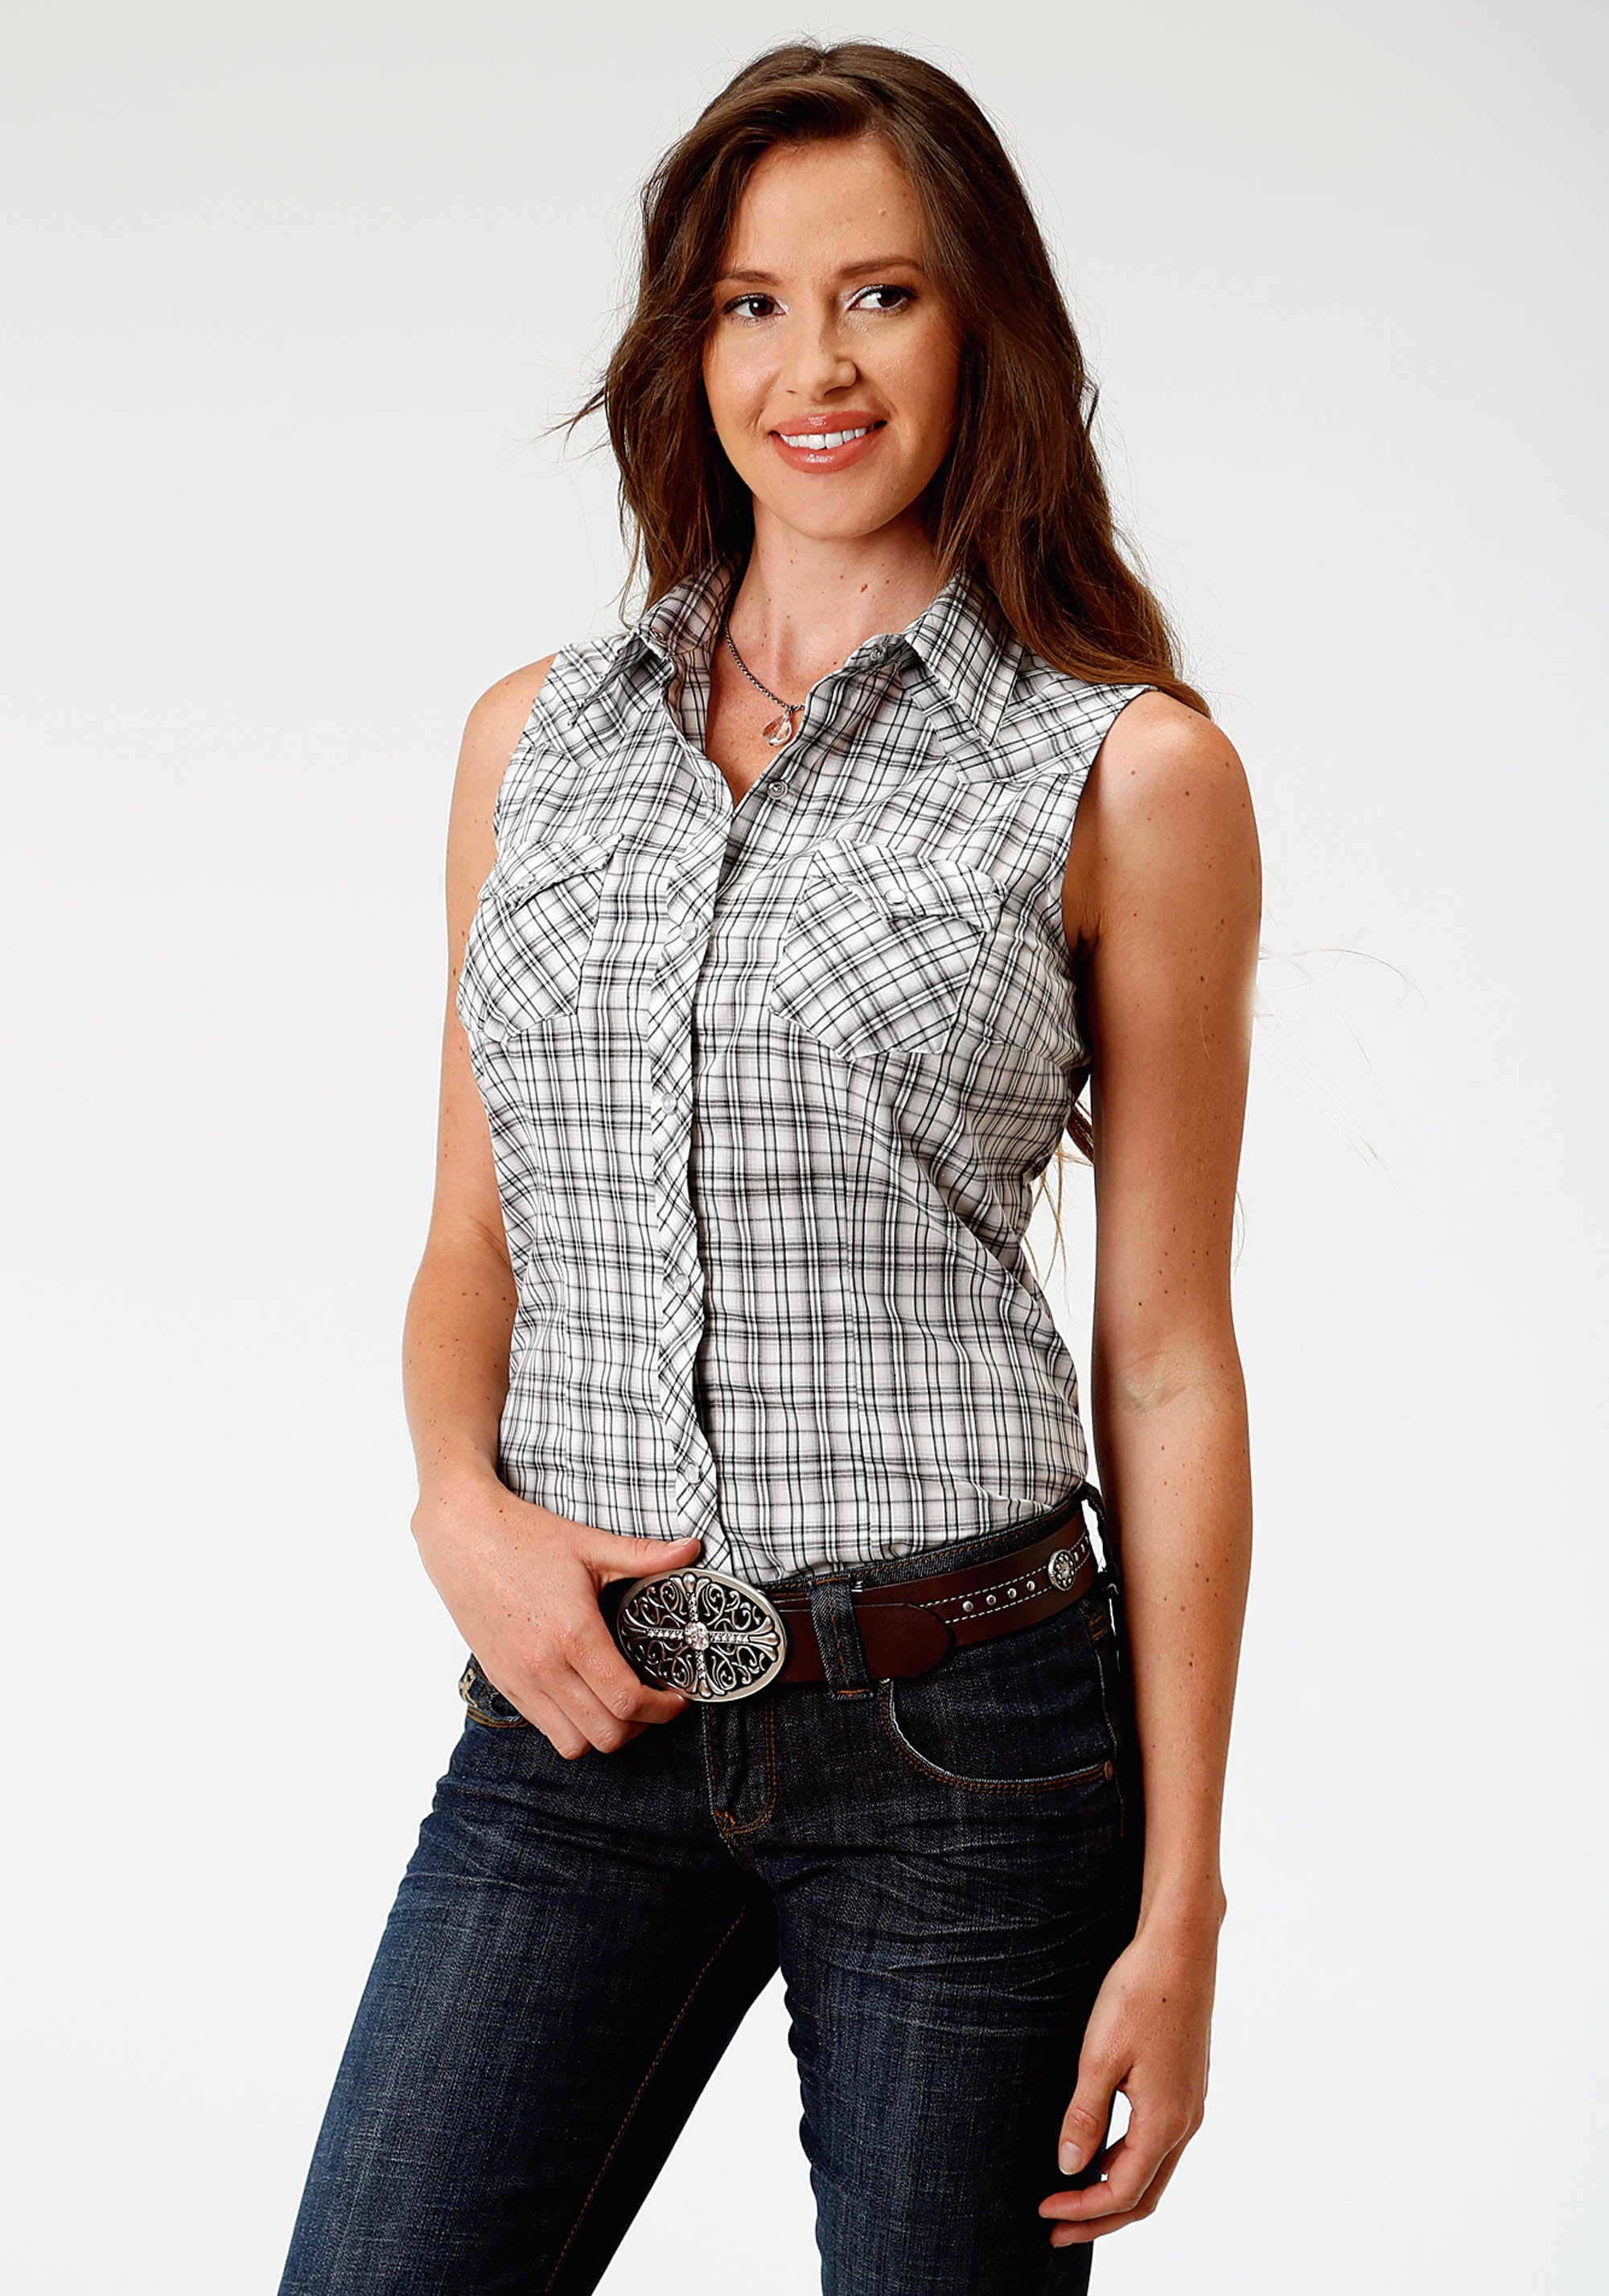 ROPER WOMENS BLACK 3636 BLACK,GREY & CREAM SMALL PLAID KARMAN CLASSICS- 55/45 PLAID SLEEVELESS